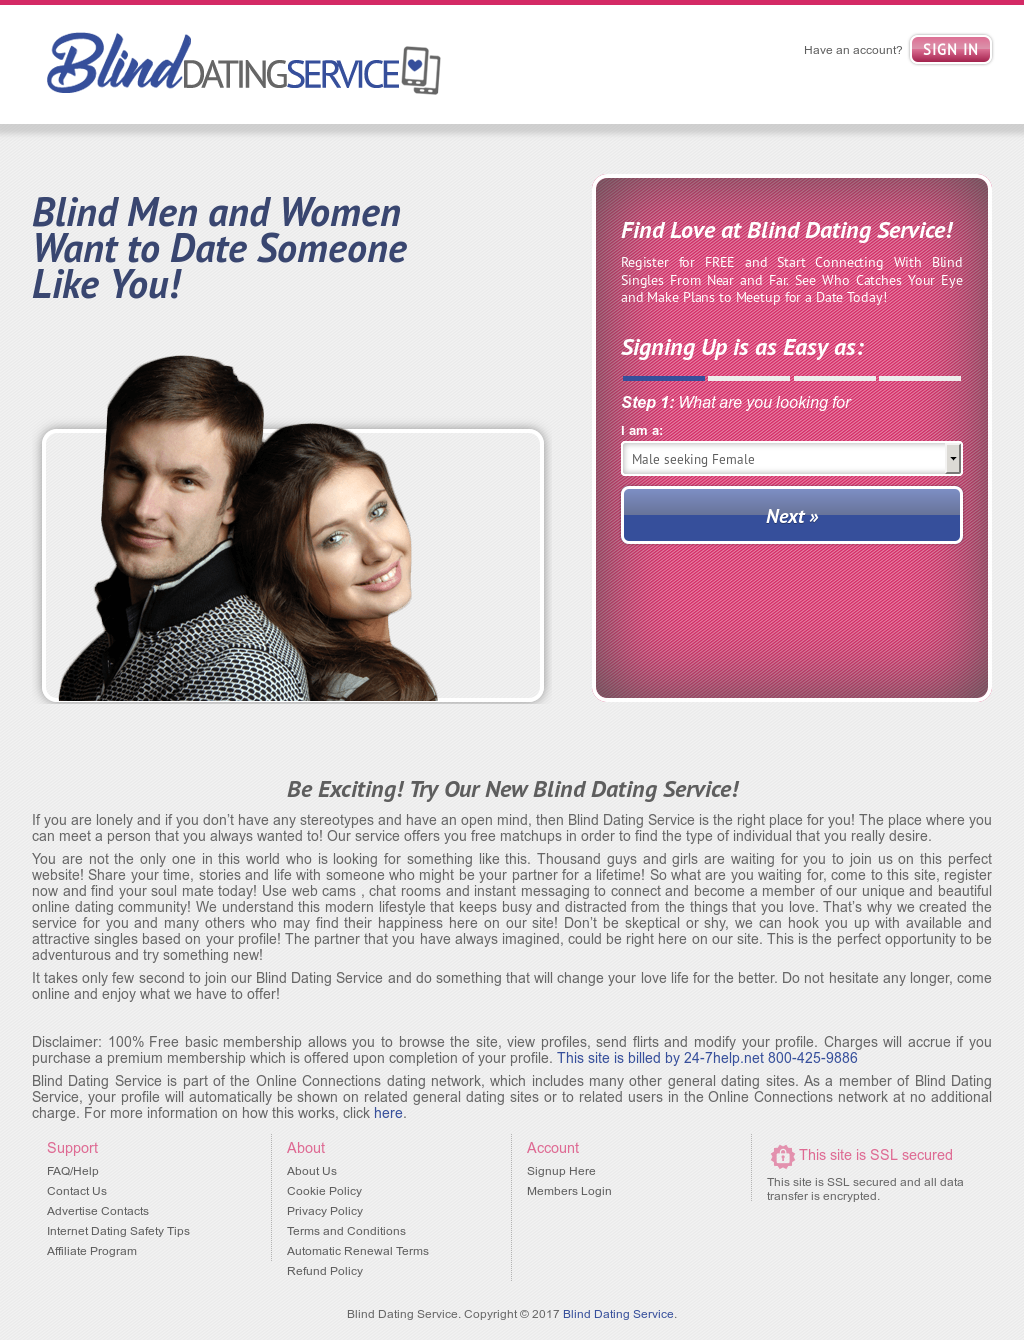 blind dating site free